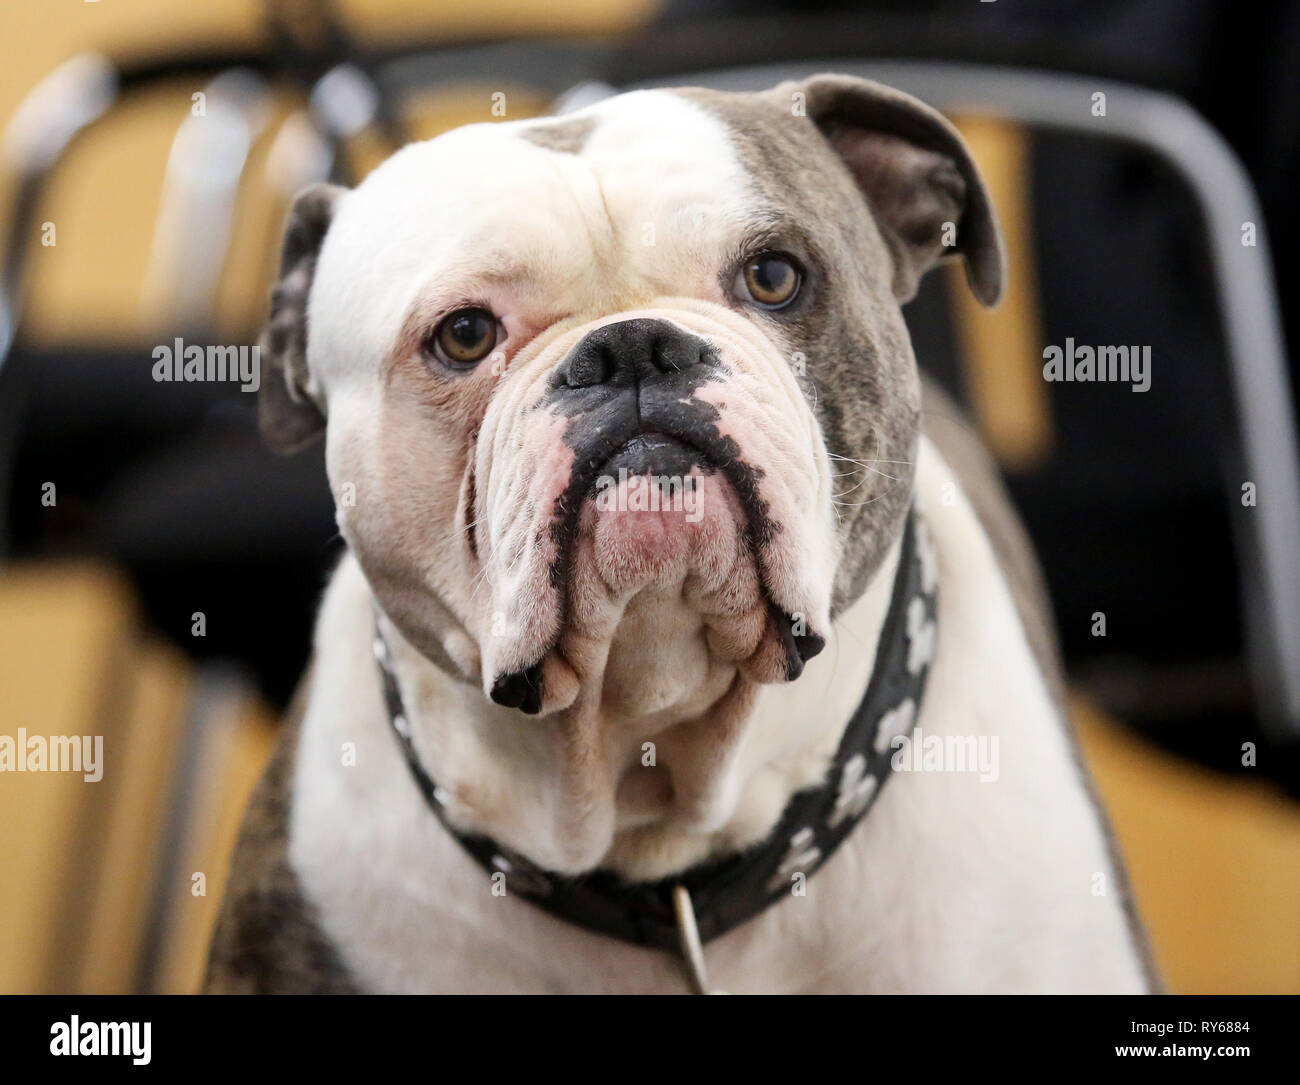 Munster, Germany. 12 March 2019, North Rhine-Westphalia, M?nster: 'Kalle' is waiting for the trial to begin in the courtroom of the Münster Higher Administrative Court. The question at issue is whether 'Kalle', which its owner acquired from breeders as 'Old English Bulldog', is a dog of a certain breed within the meaning of the National Dog Law. North Rhine-Westphalia's highest administrative court is now dealing with the dangerous nature of the Bulldog crossing. Credit: dpa picture alliance/Alamy Live News - Stock Image